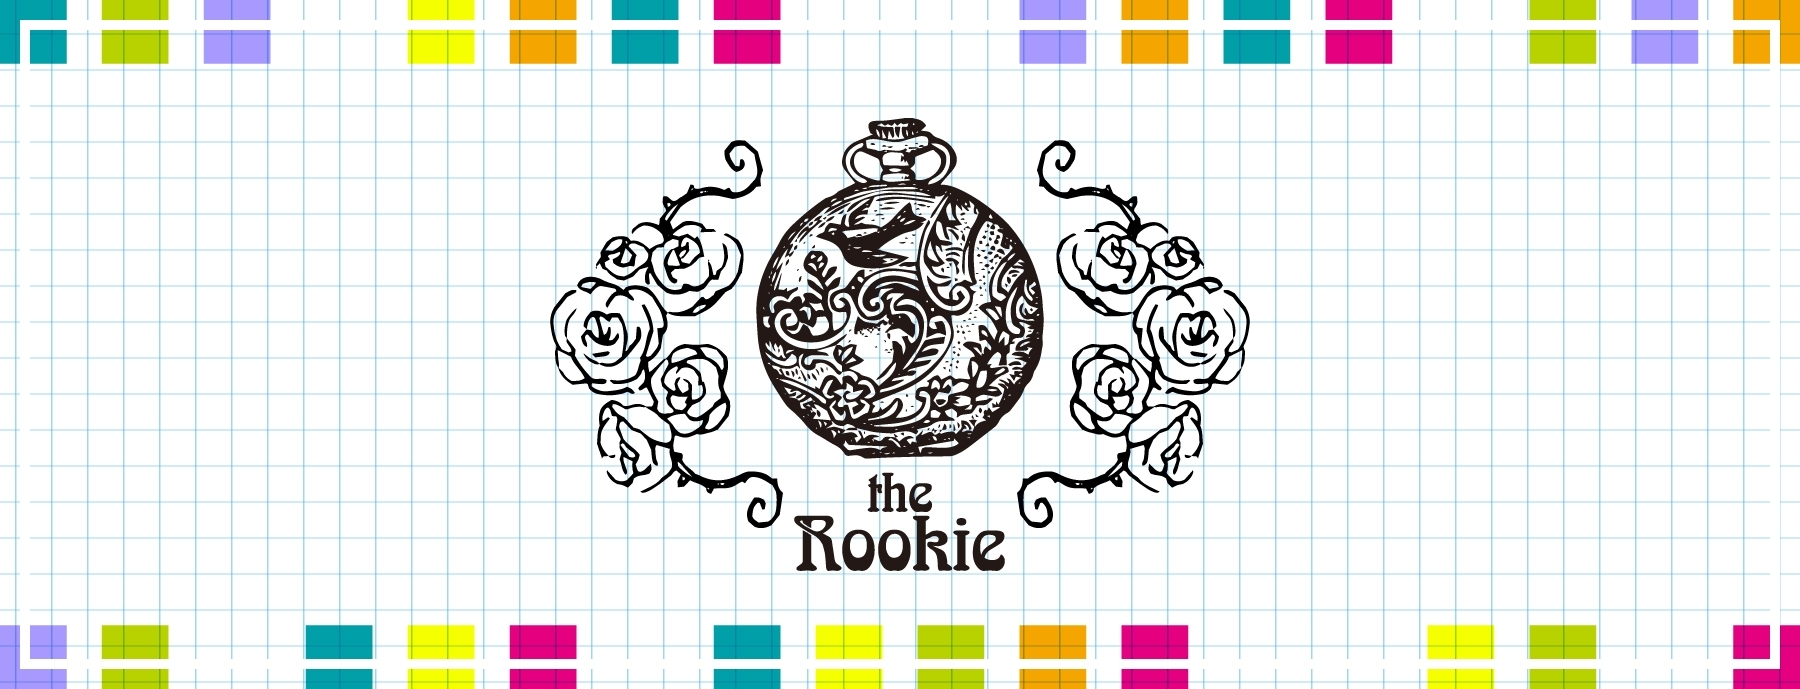 the Rookie 〜ルーキー〜